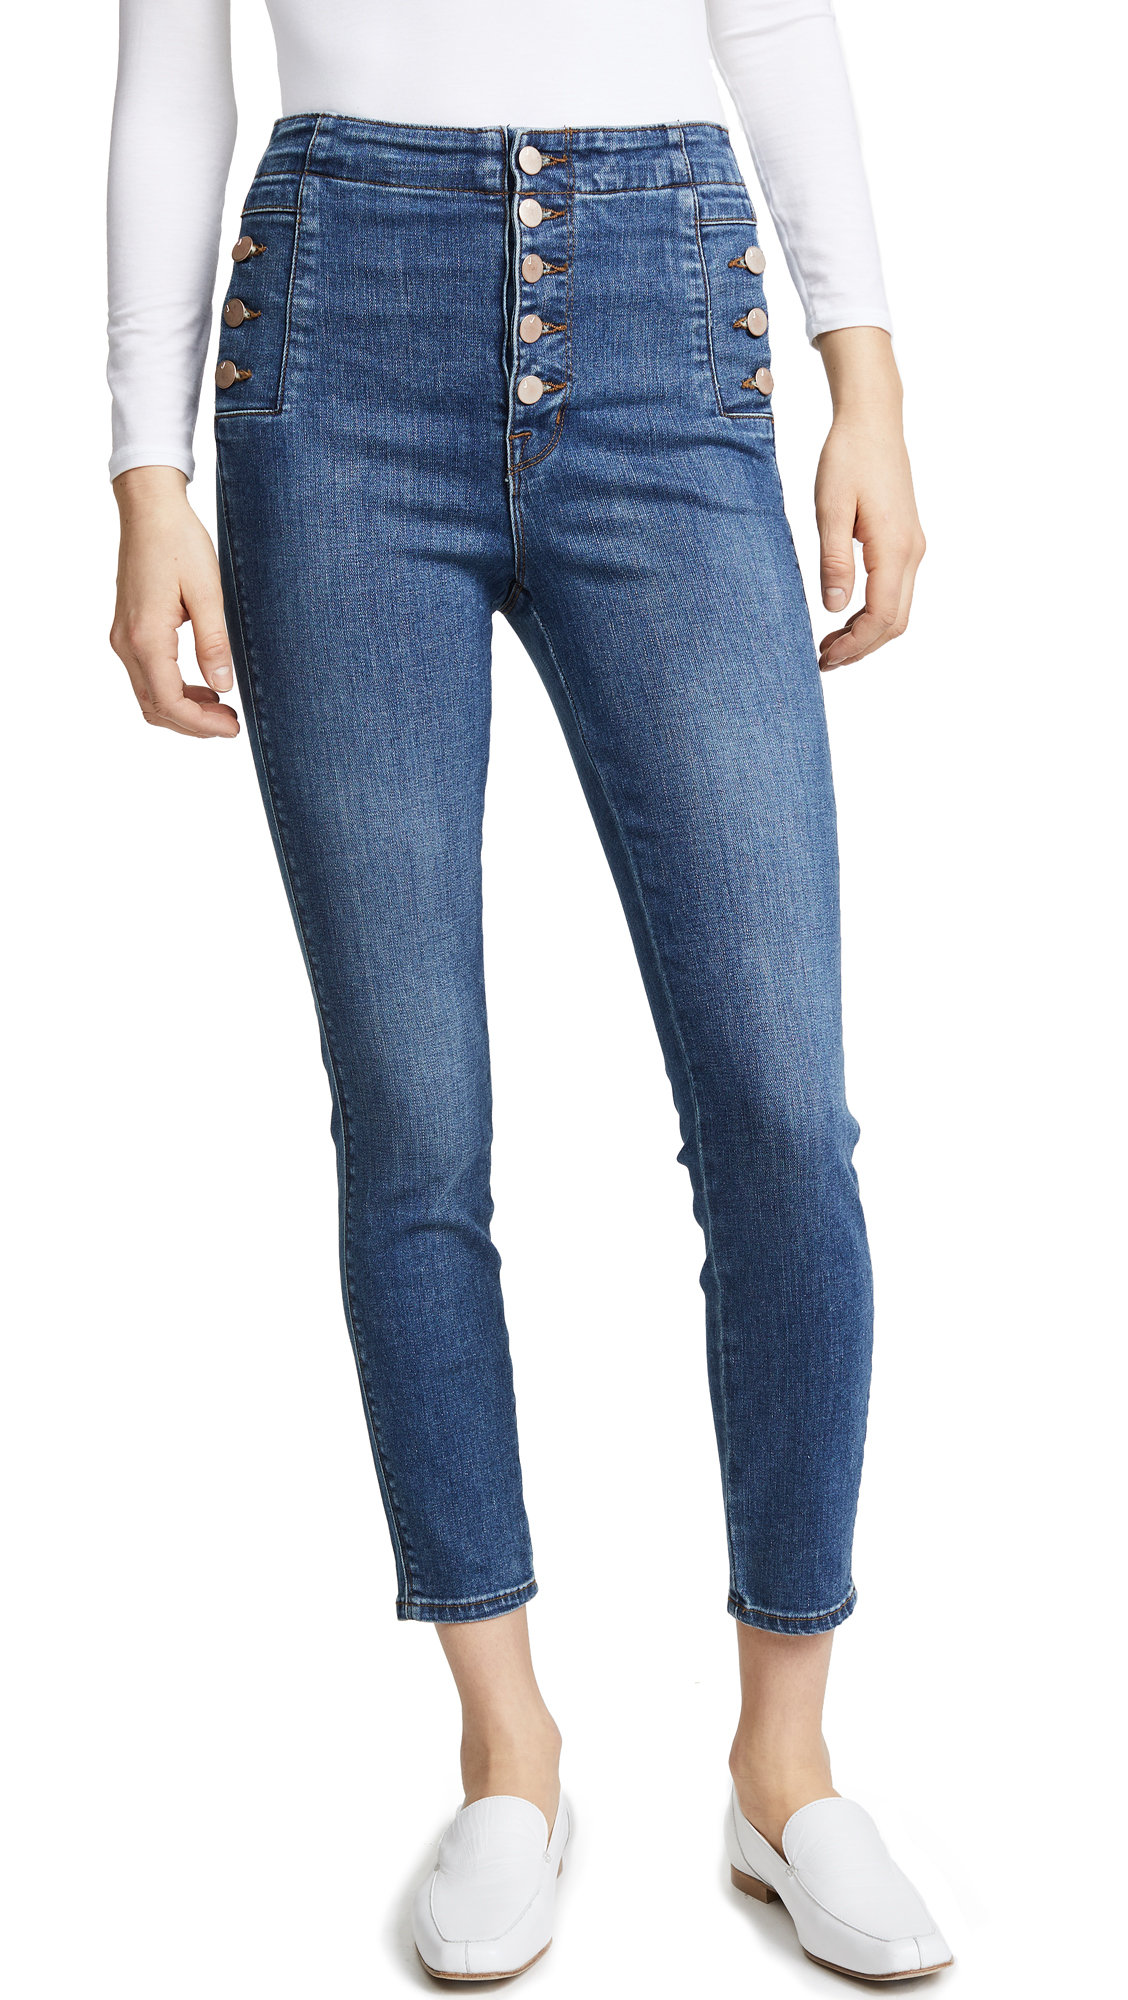 Natasha Sky High Skinny Crop Jeans In Lovesick in Blue